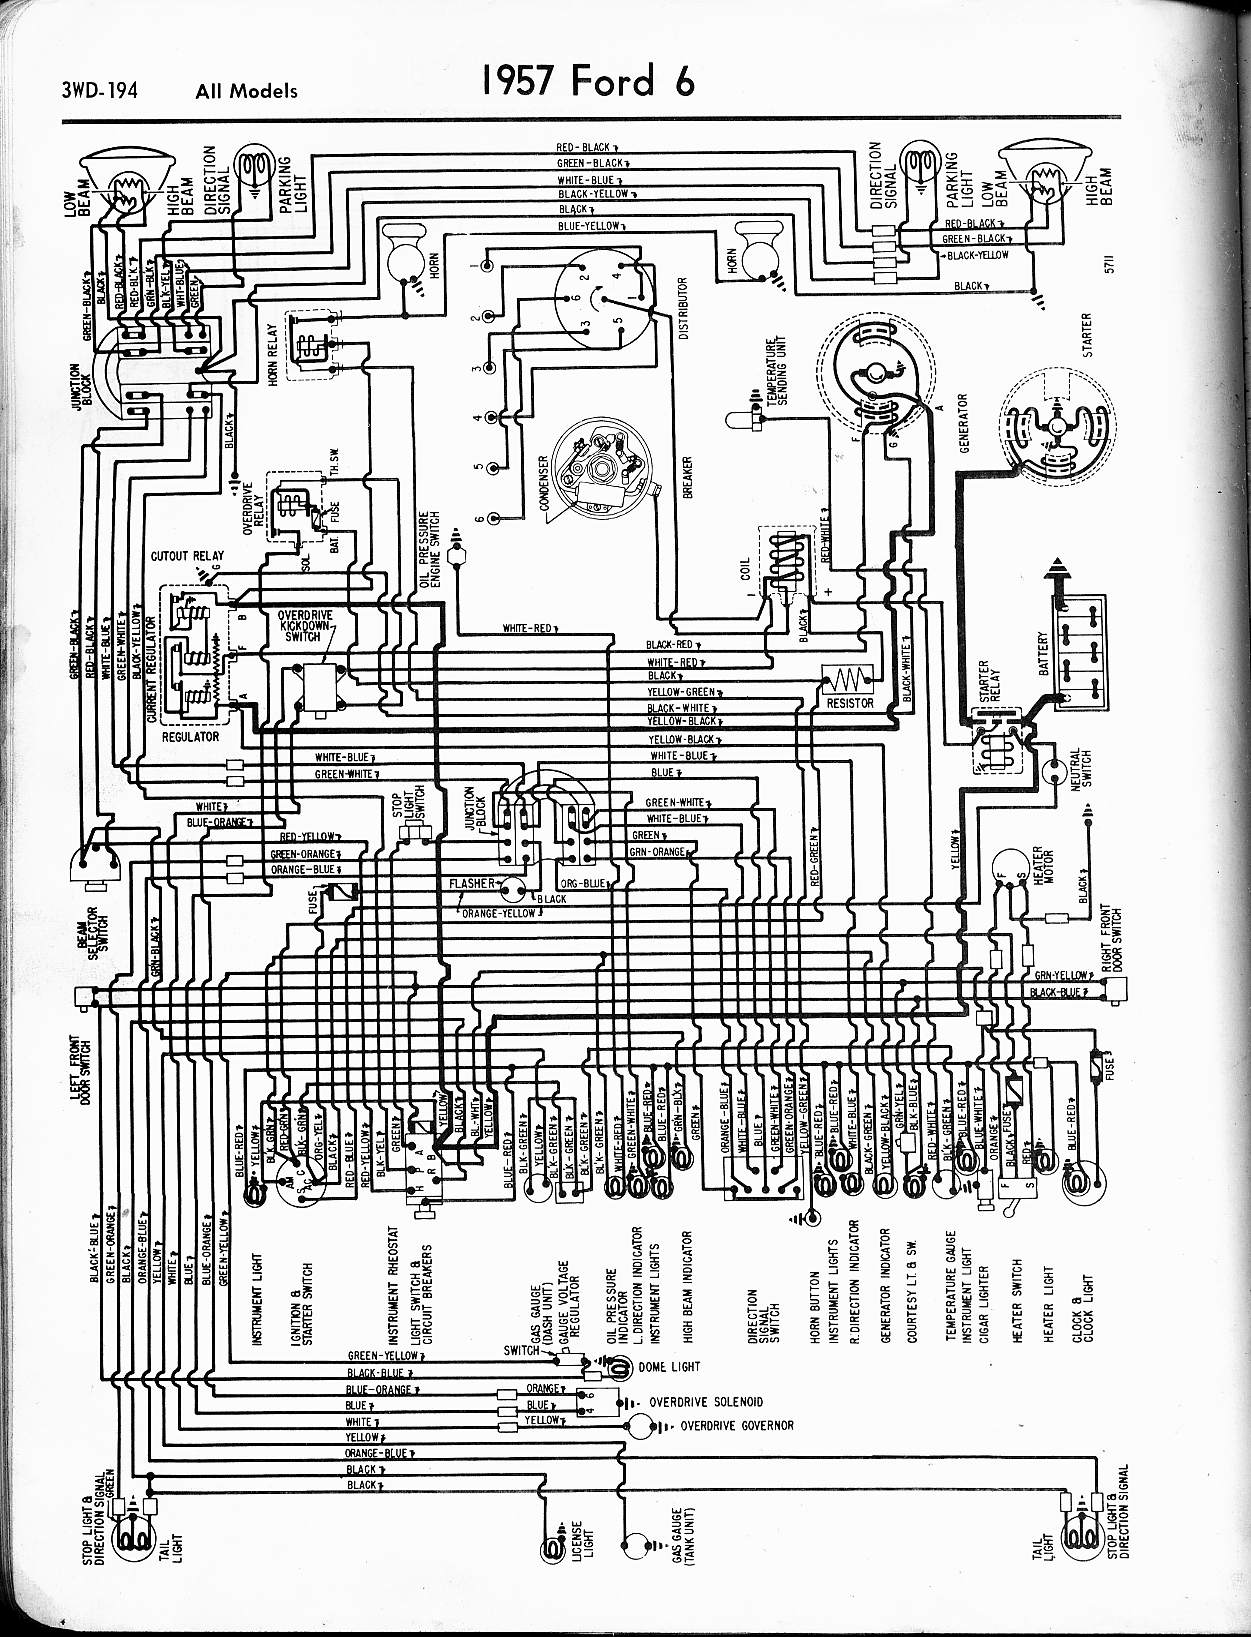 hight resolution of 1954 ford wiring harness wiring diagram name 1954 ford wiring harness wiring diagram load 1954 ford